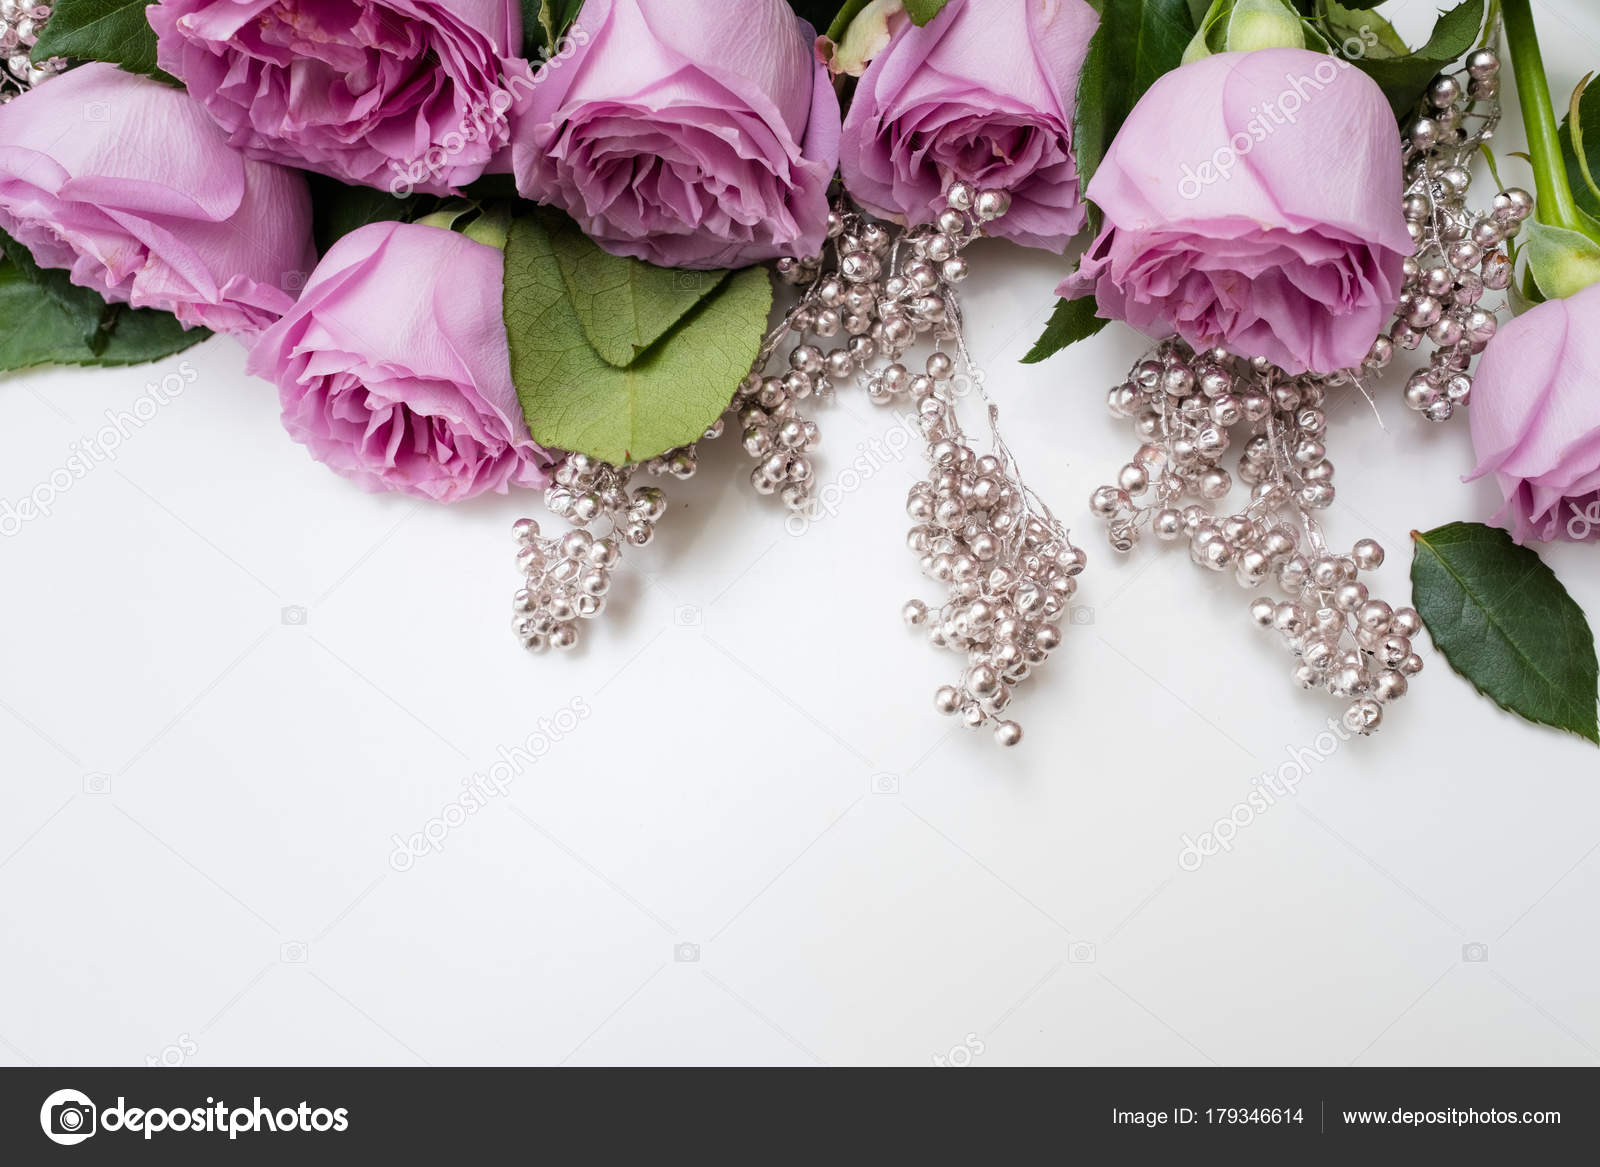 Spring Wedding Flowers Pink Roses Arrangement Stock Photo